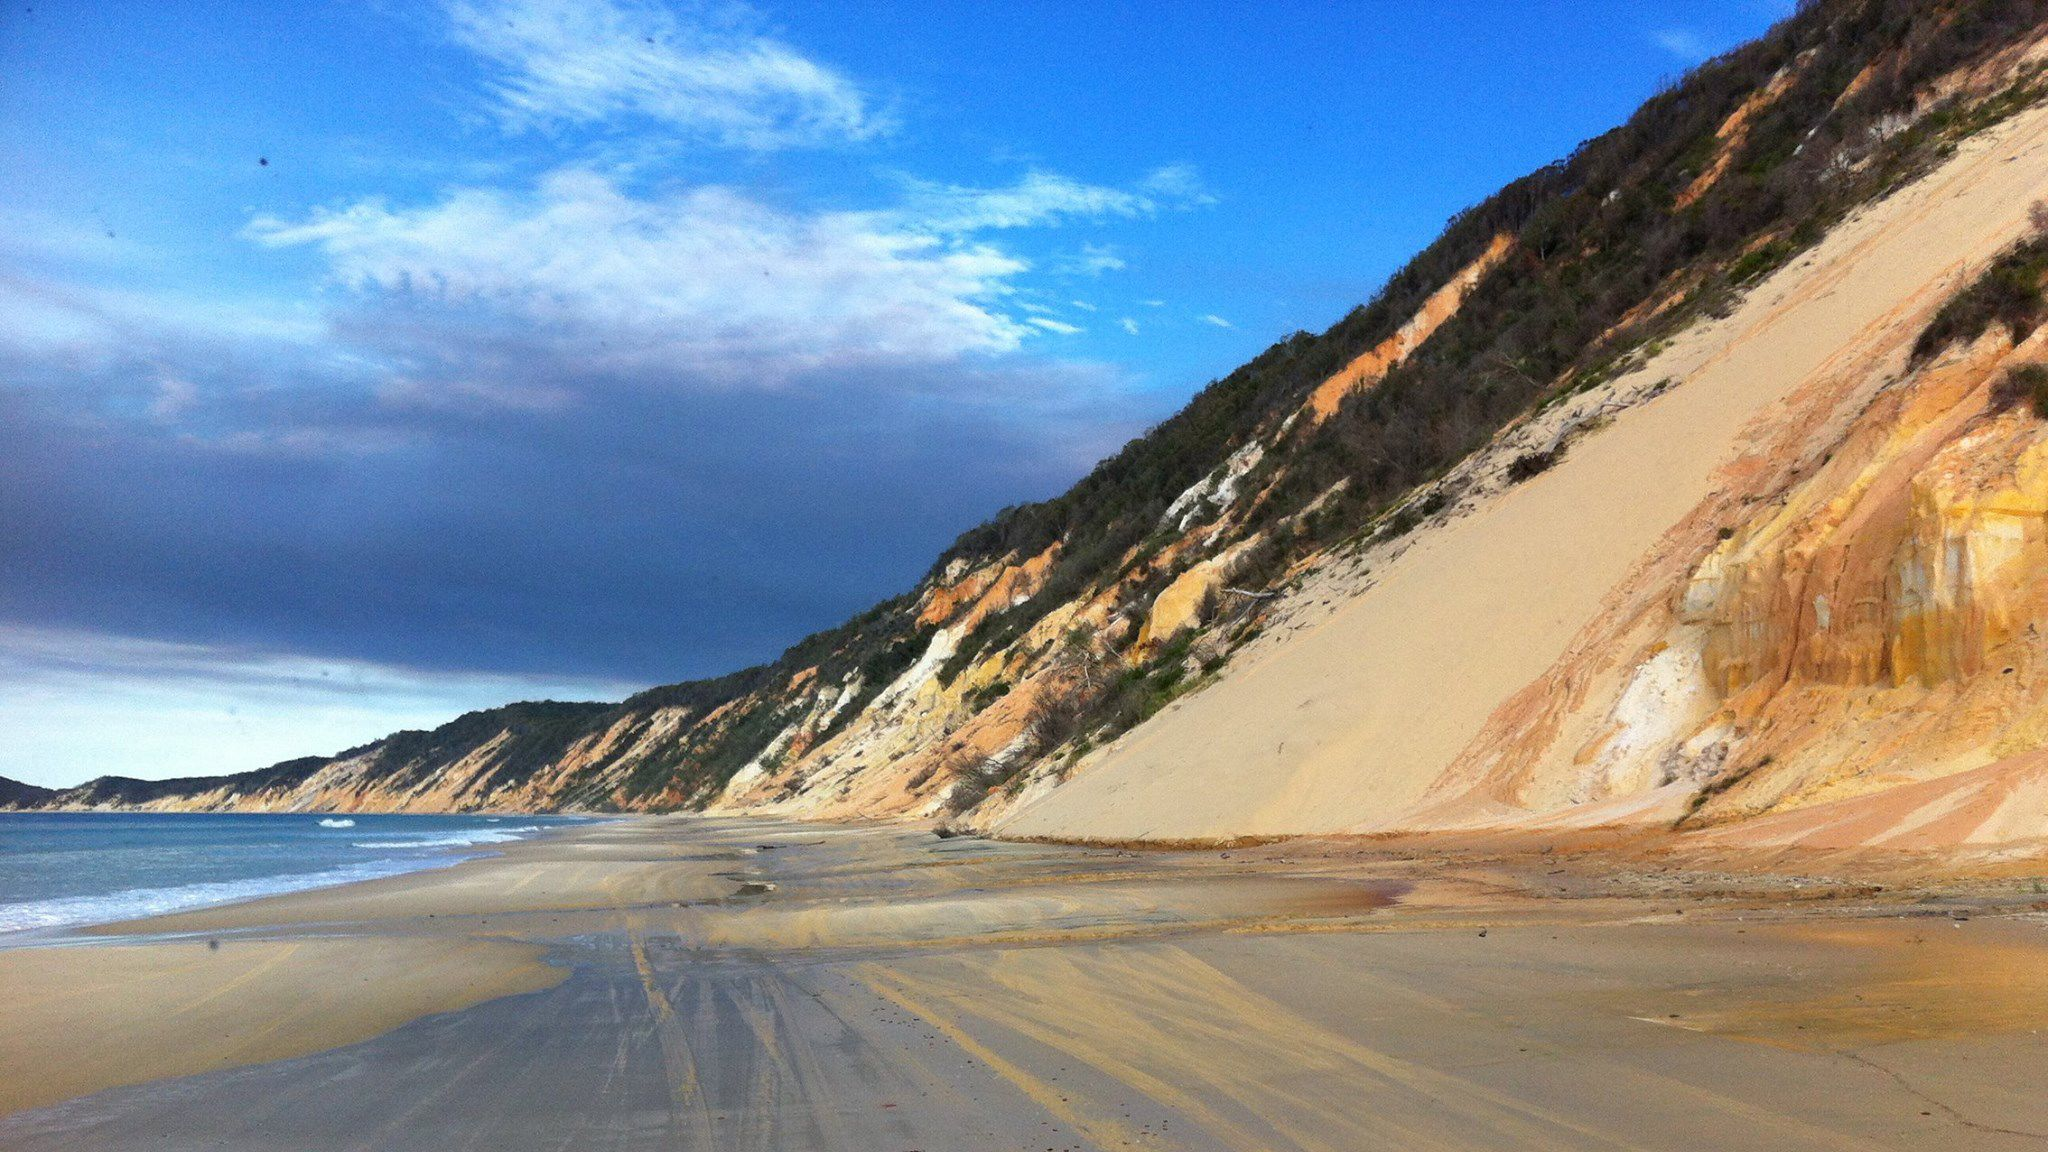 Serene view of the sand and water seen on the Fraser Island Day Tour on the Sunshine Coast